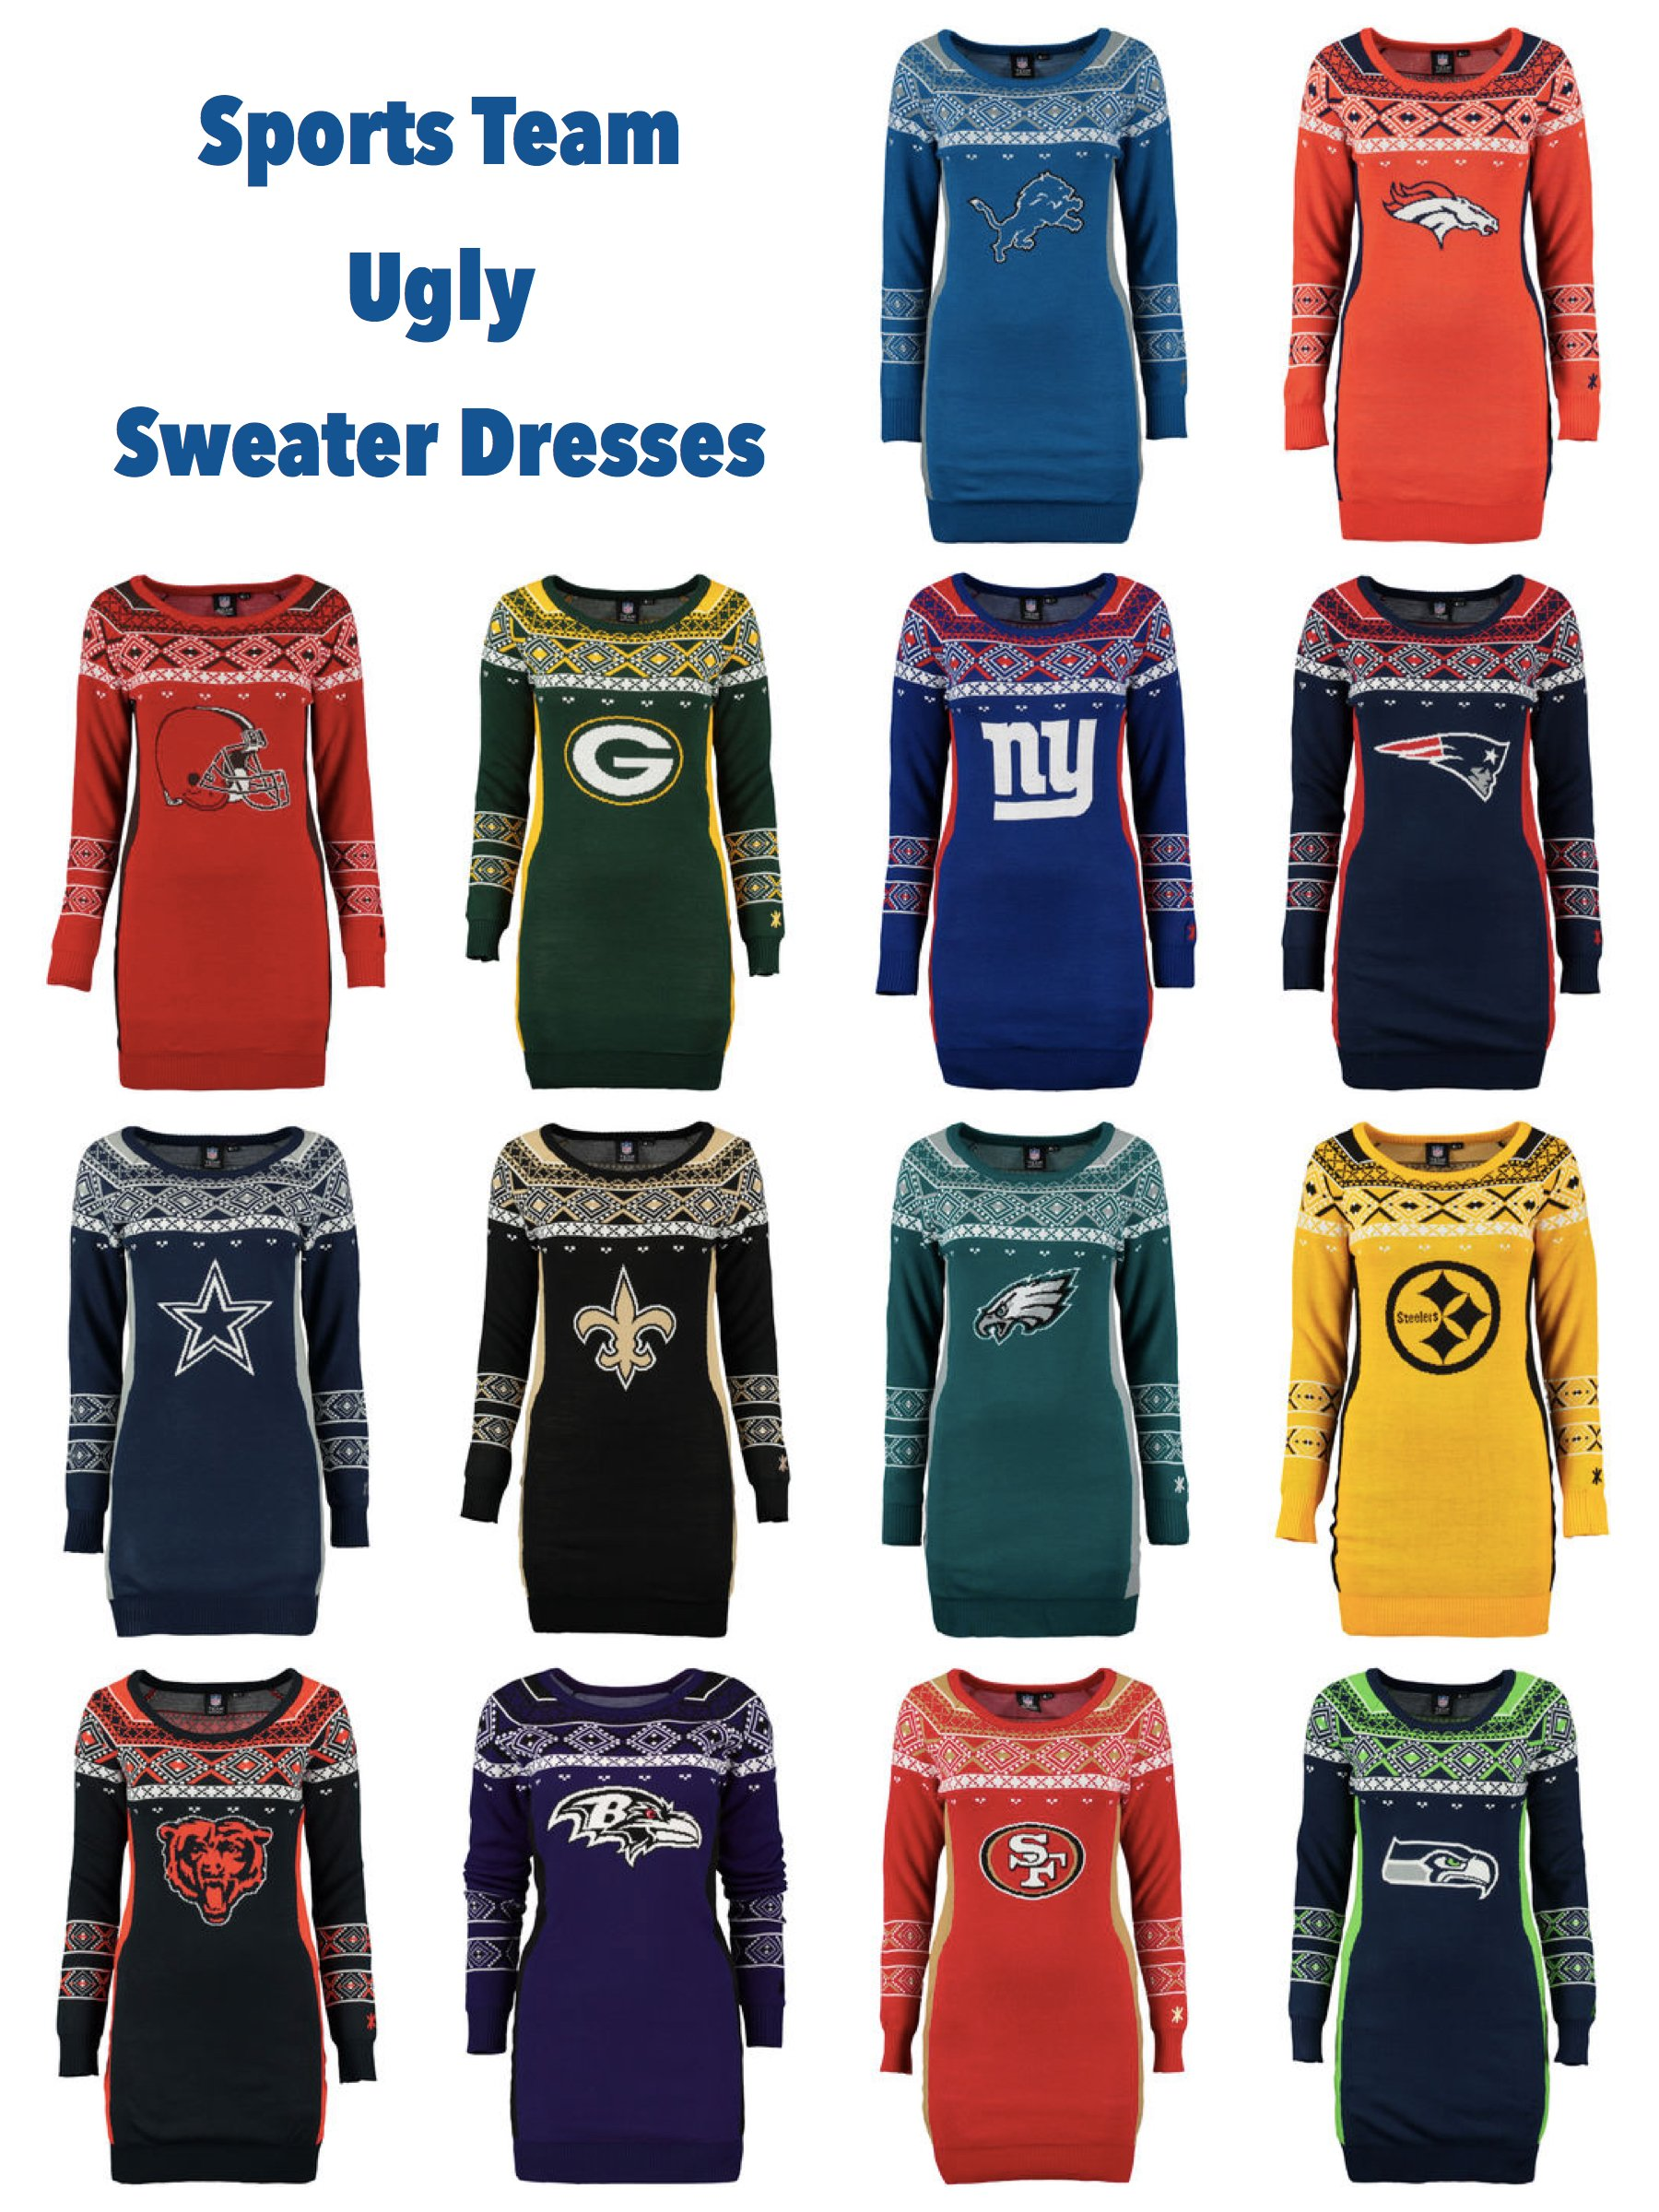 Sports Team Ugly Sweater Dresses